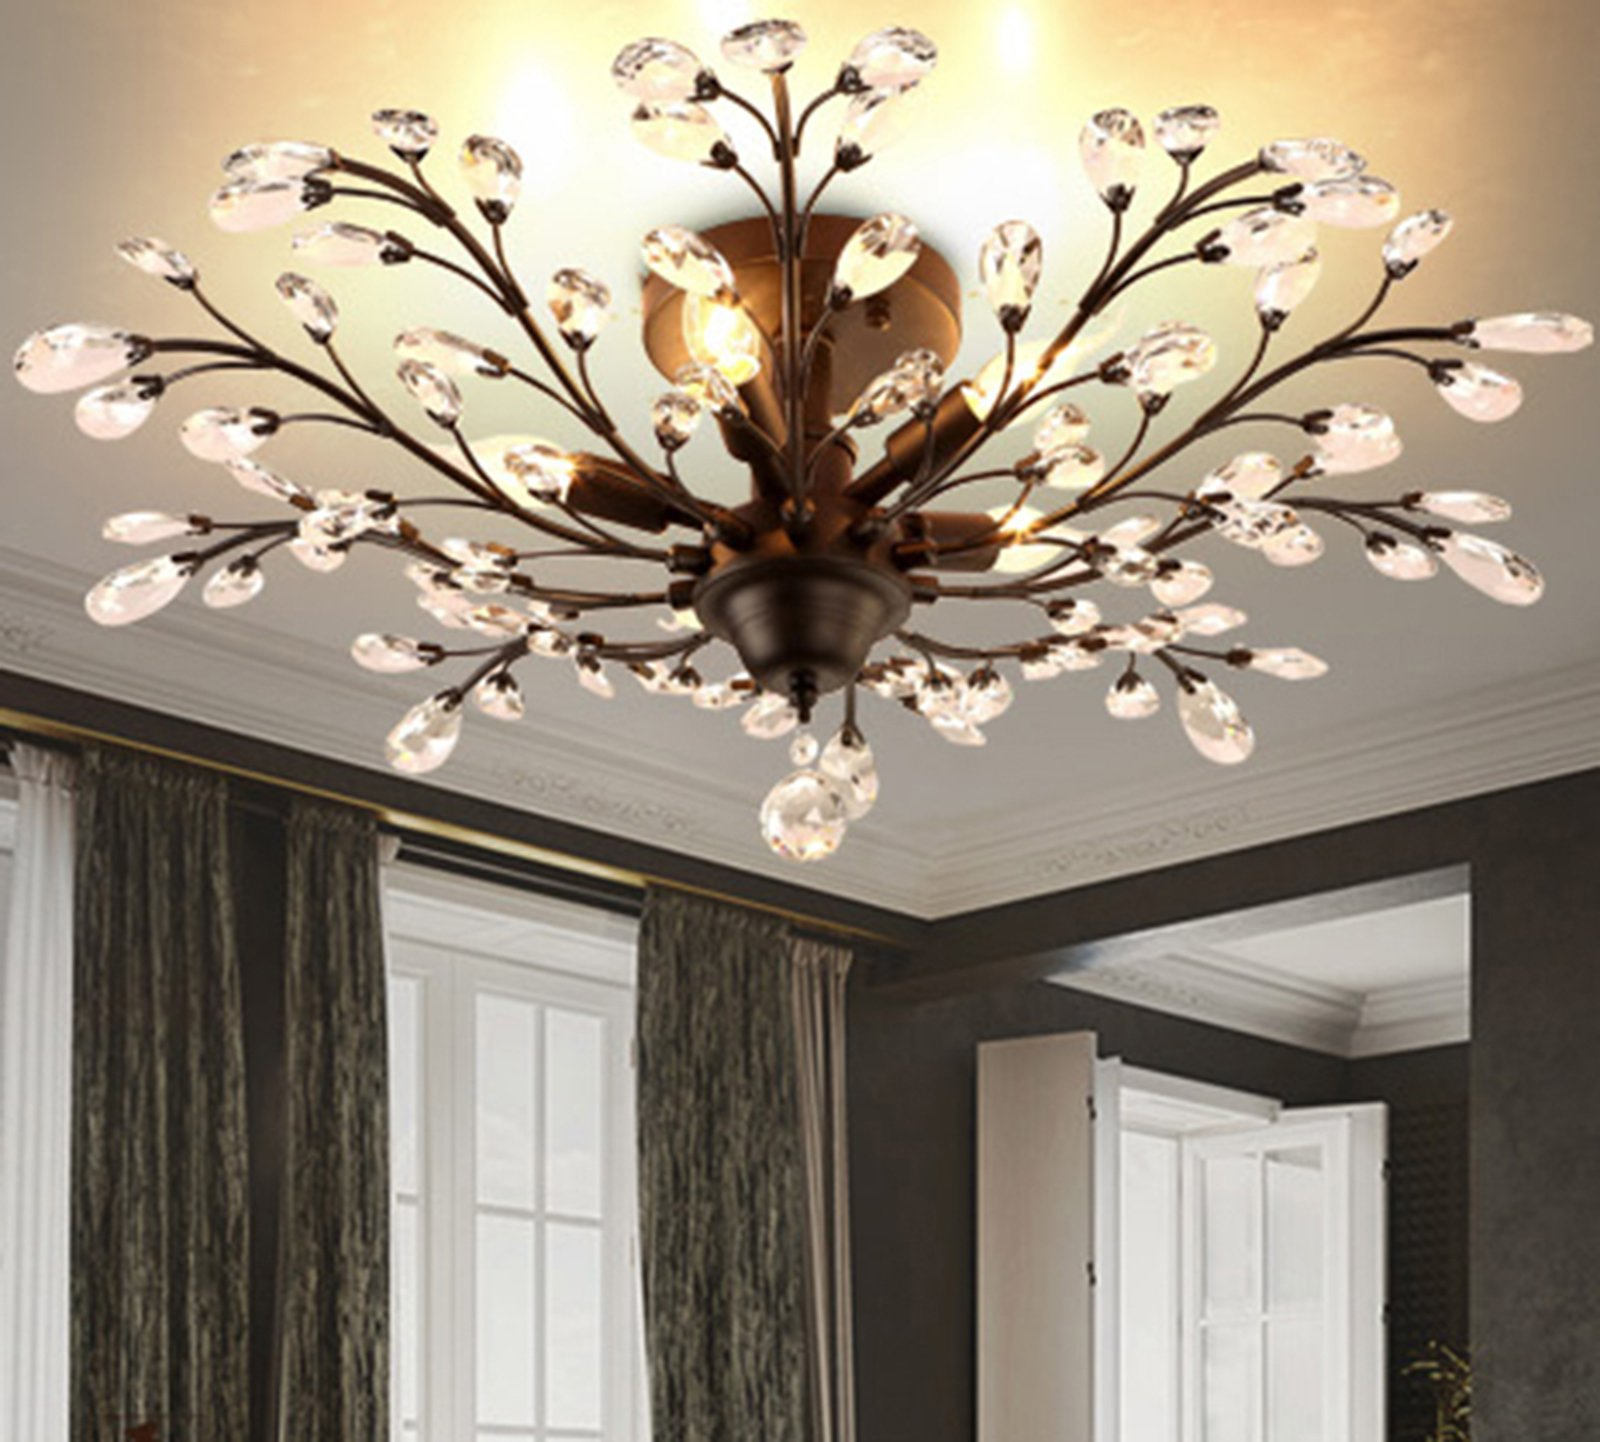 SEOL-LIGHT Vintage Large Crystal Branches Chandeliers Black Ceiling Light Flush Mounted Fixture with 5 Light 200W Large Size by SEOL LIGHT (Image #5)